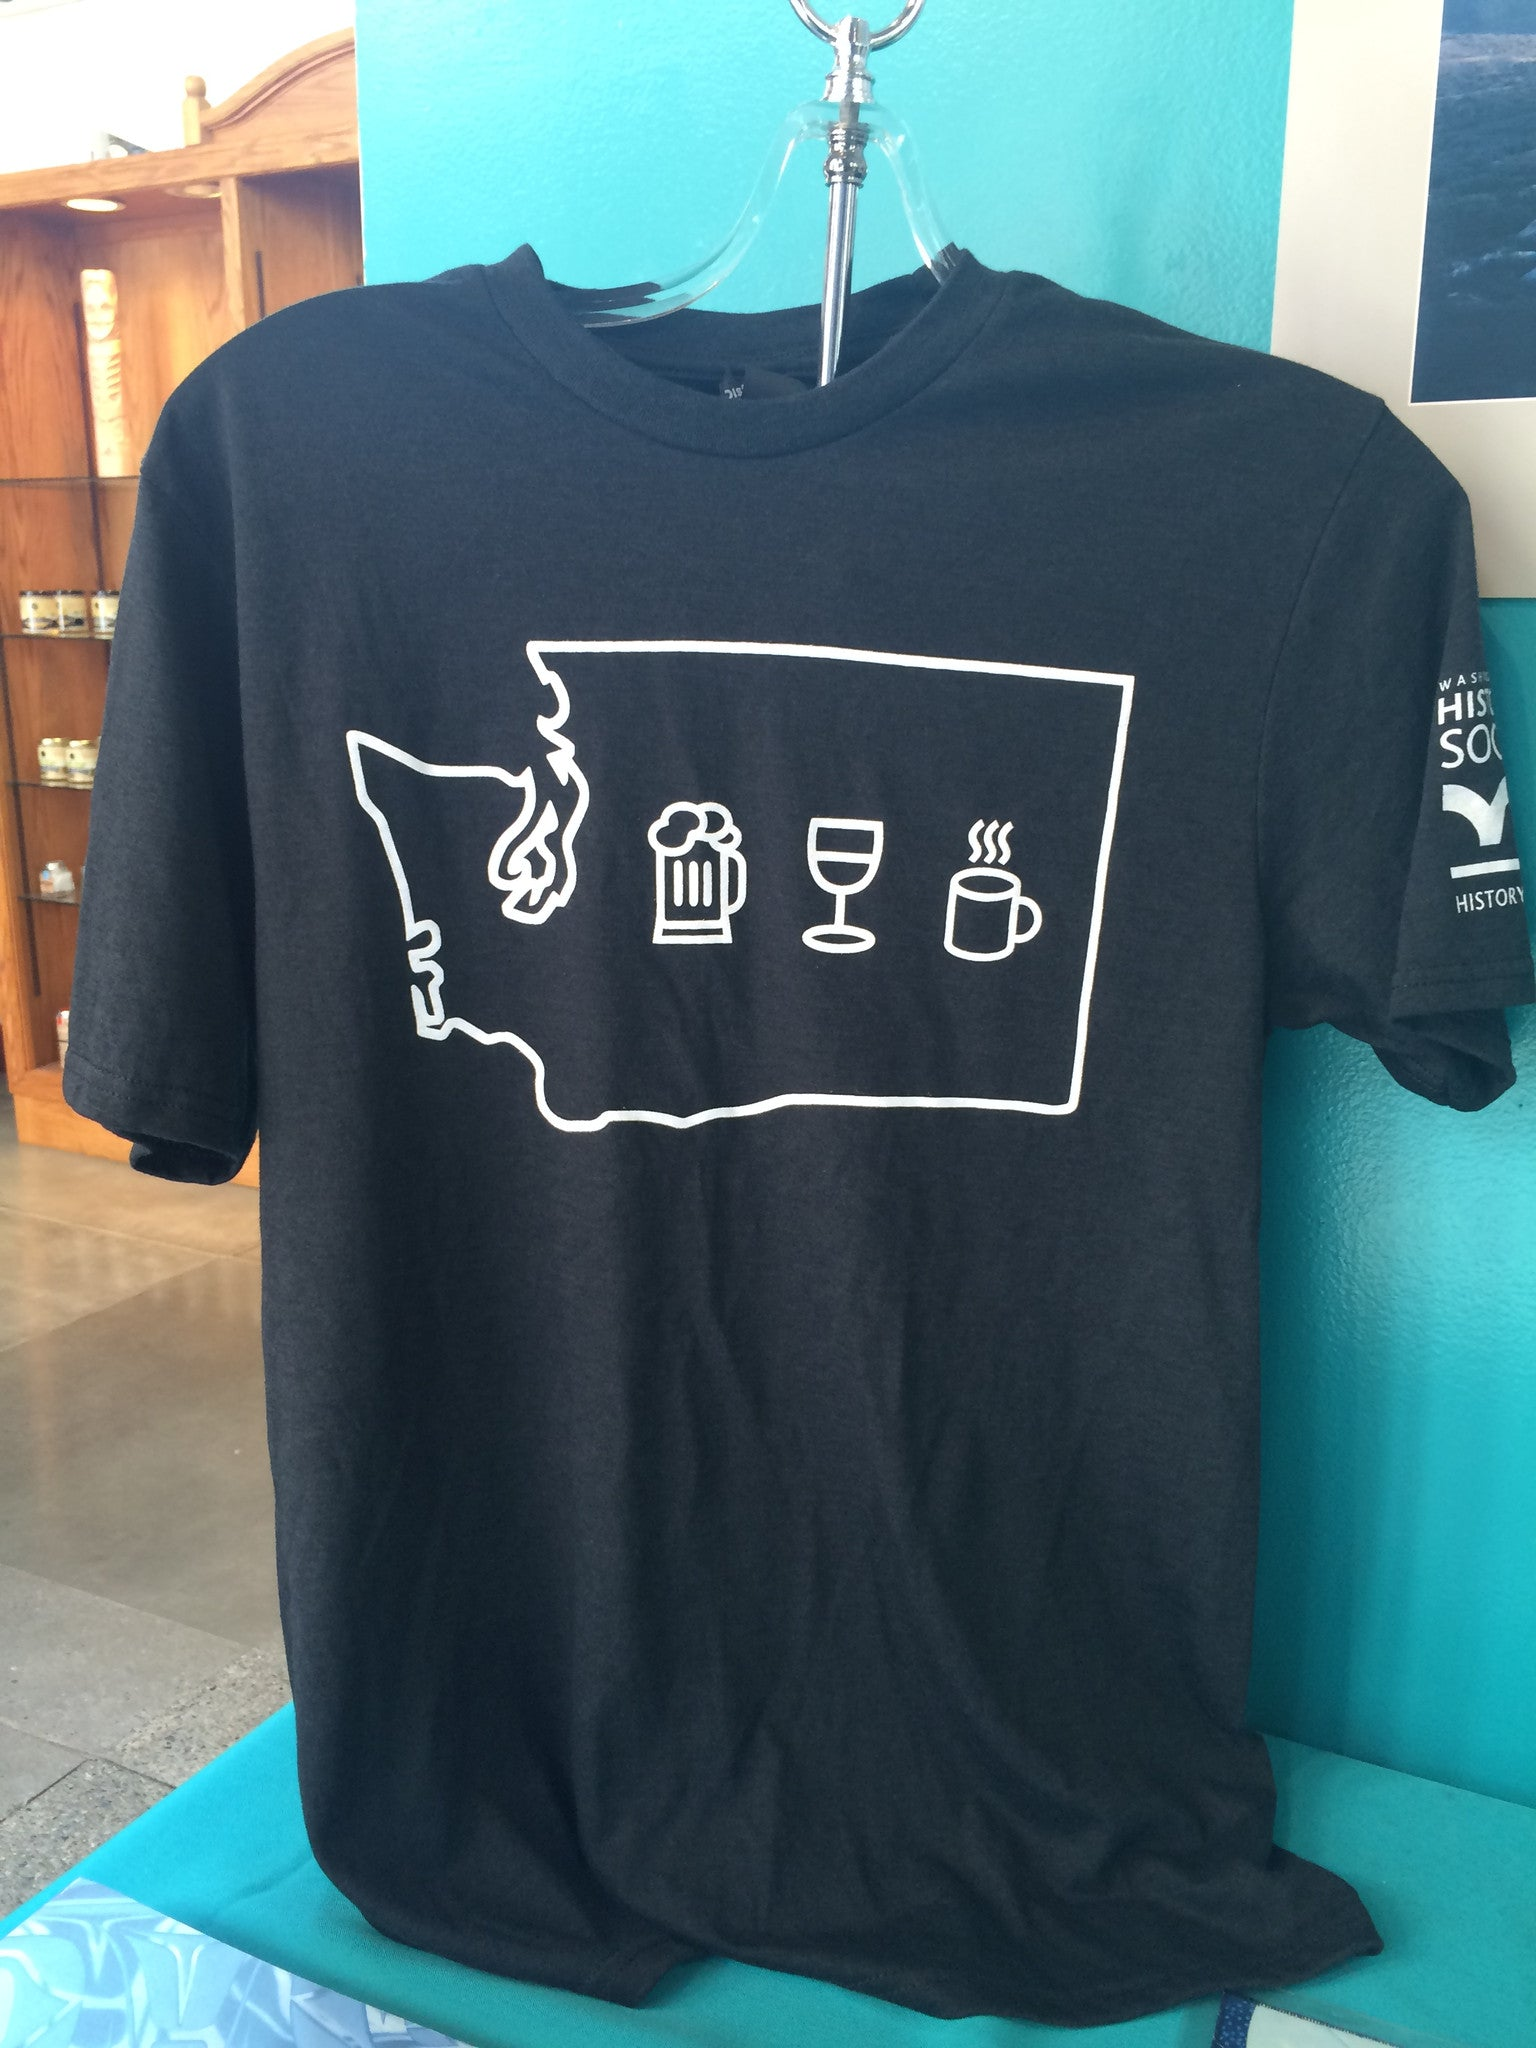 Steins, Vines, & Grinds T-Shirt - Washington State Historical Society